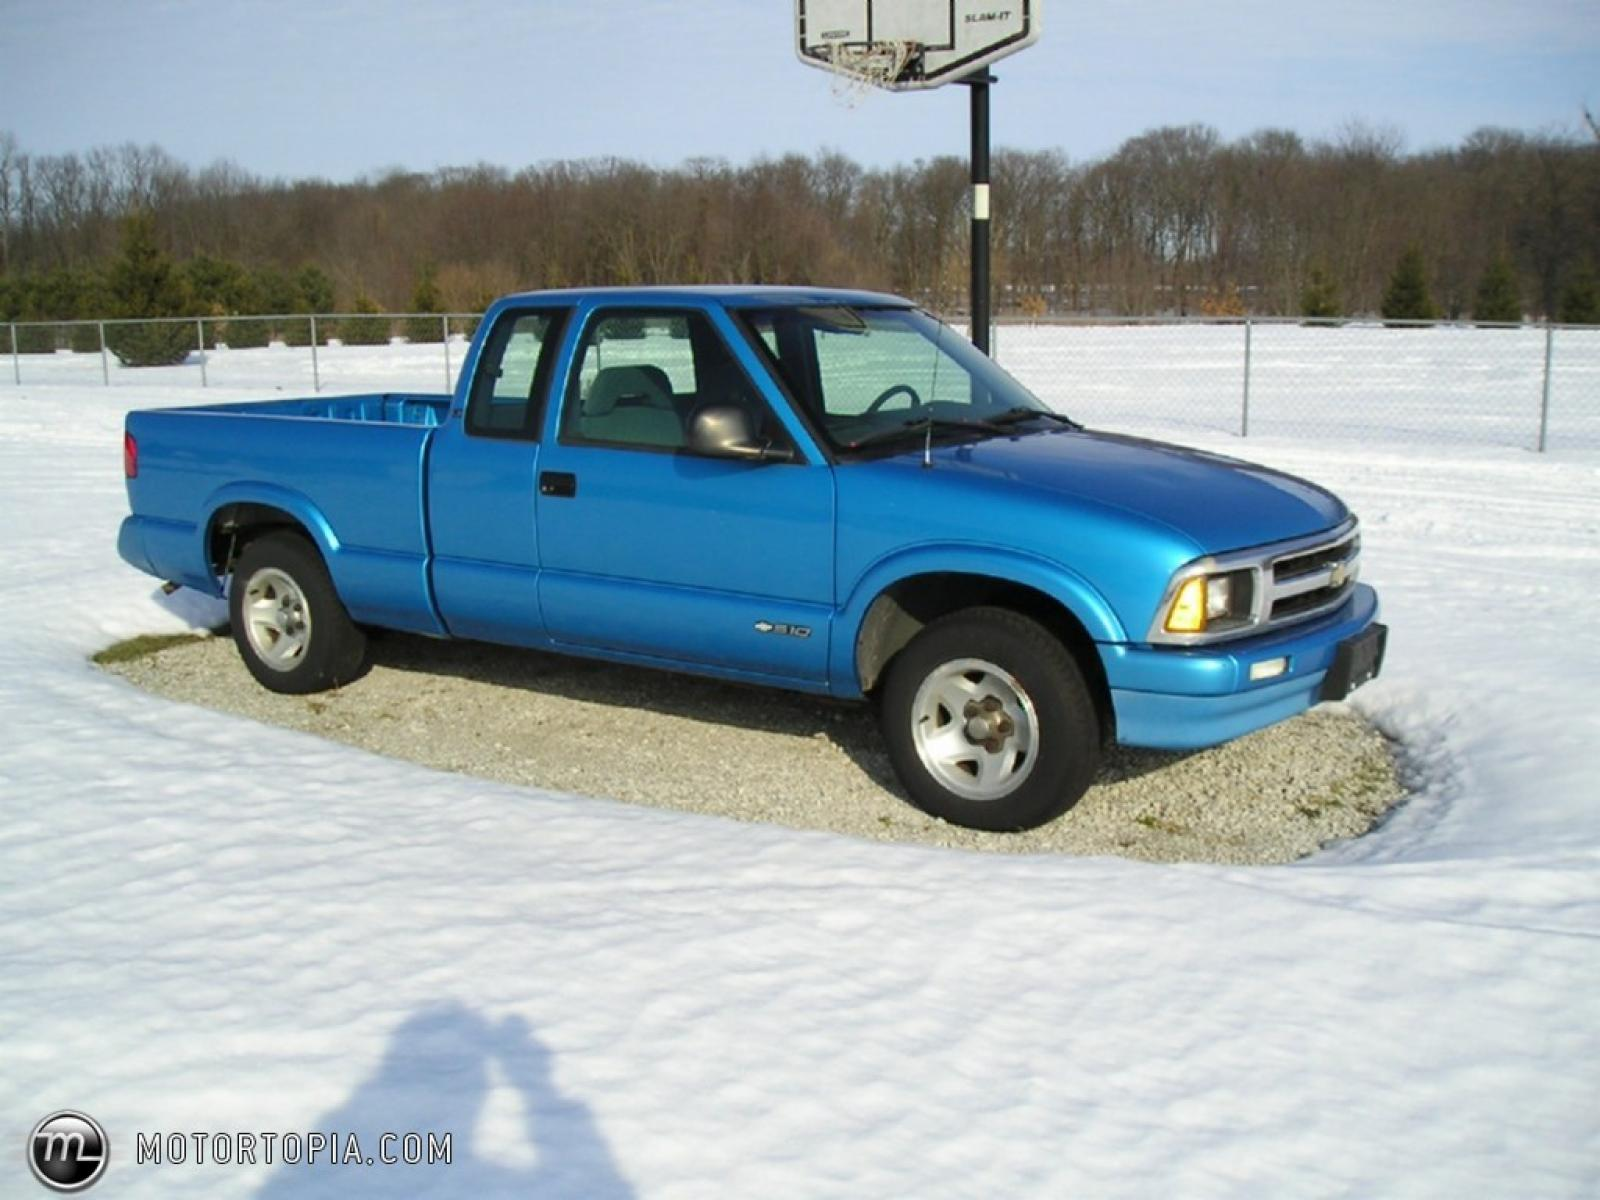 1995 Chevrolet S 10 Information And Photos Zombiedrive Chevy Monte Carlo Wiring Diagram 800 1024 1280 1600 Origin